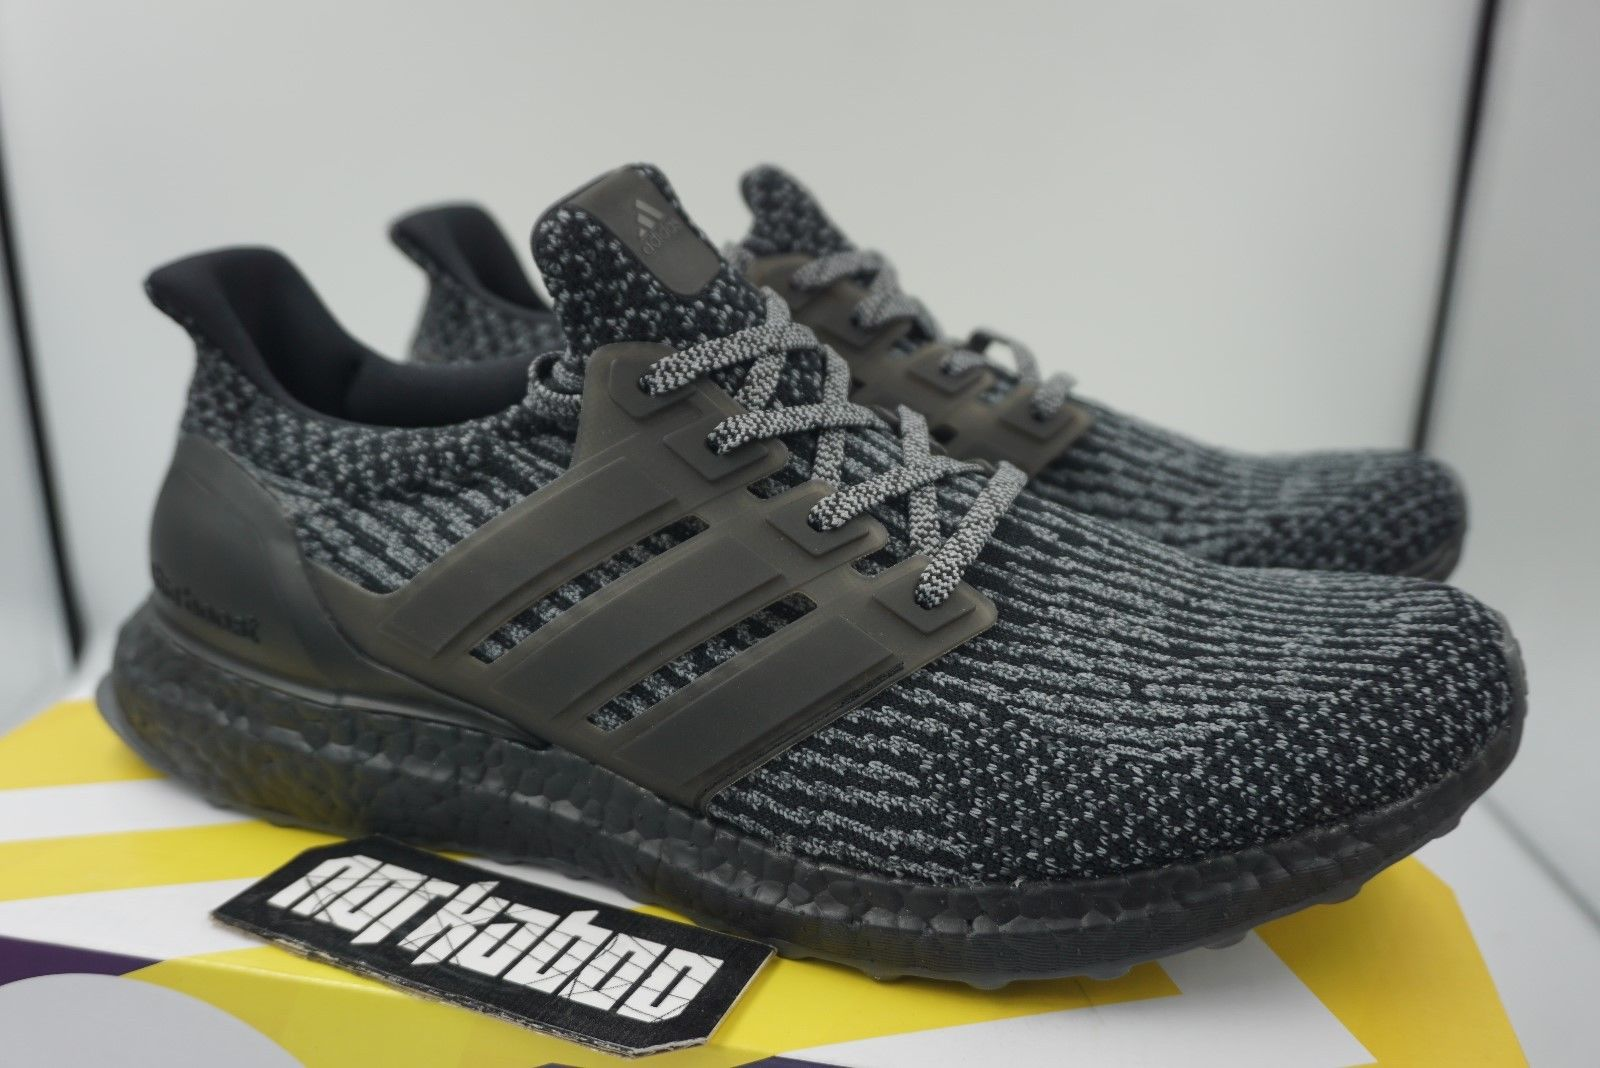 separation shoes 2cfb6 a6206 Adidas Ultra Boost 3.0 Limited Triple Black Silver Grey BA8923